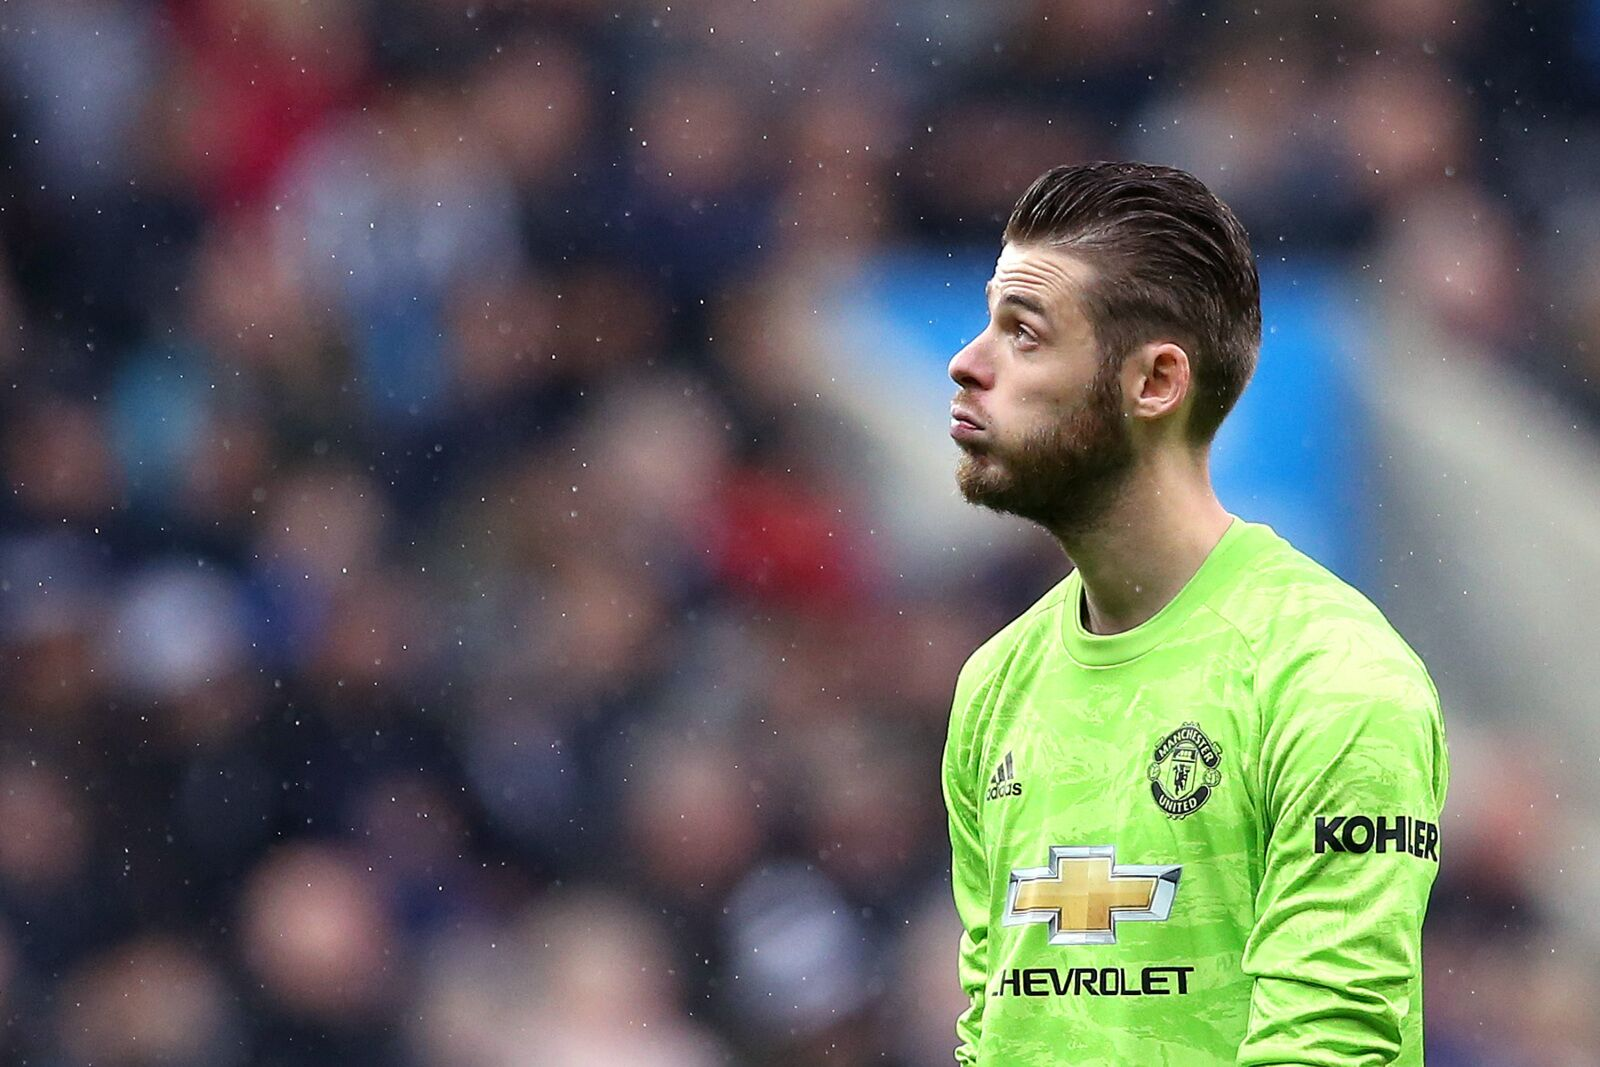 Man United's dressing room is lacking players – David de Gea latest